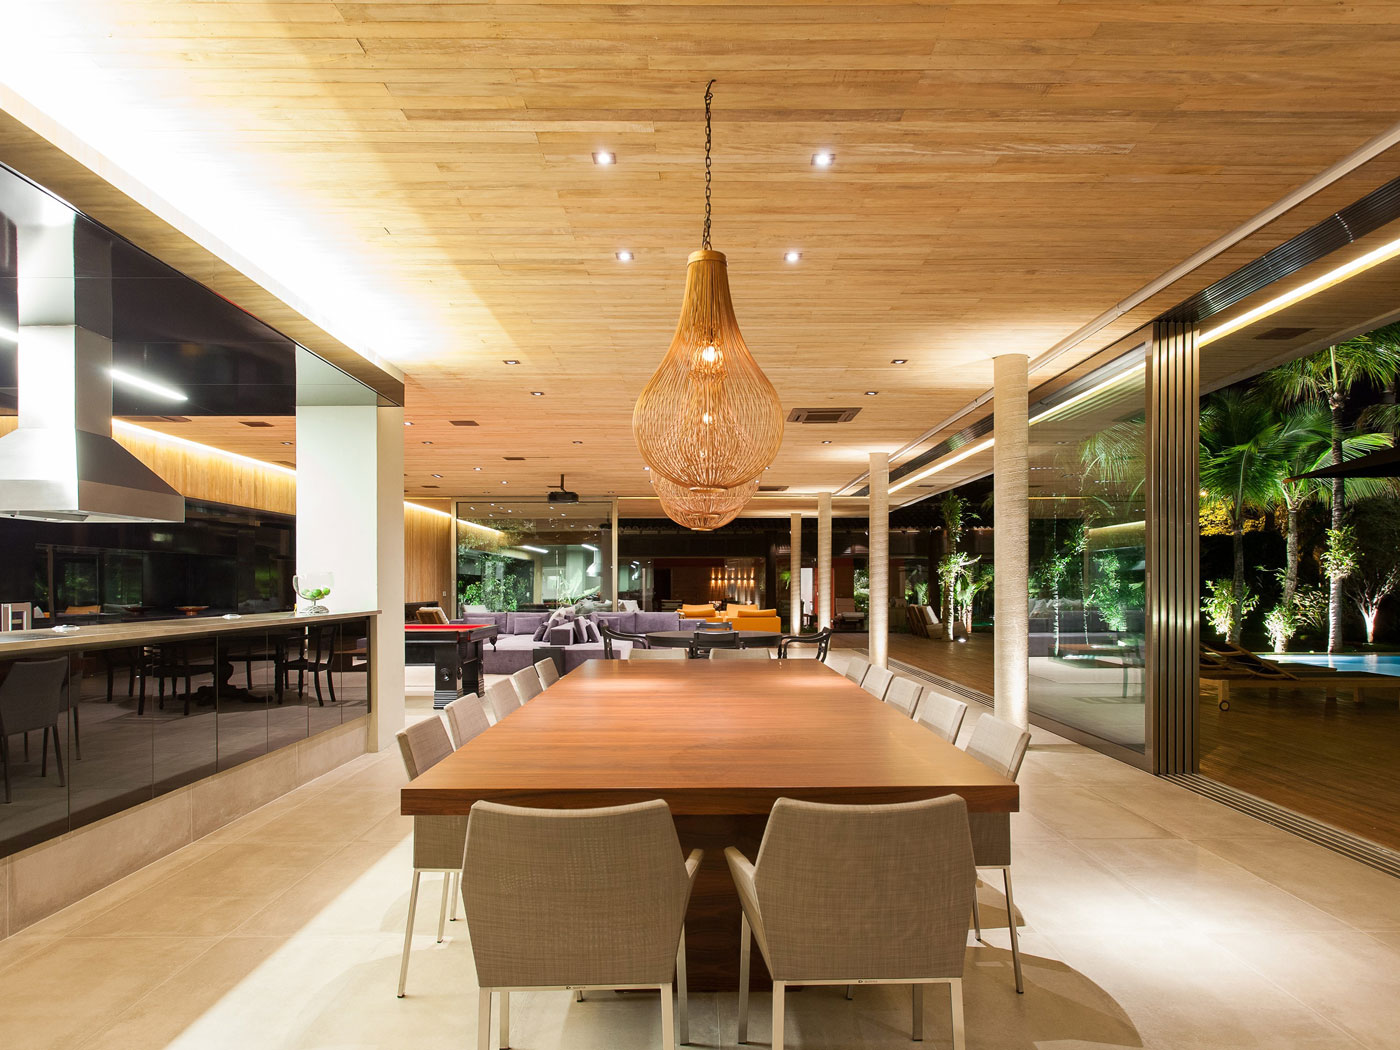 Modern Leisure Pavilion of MZ Residence by Basiches Arquitetos-09